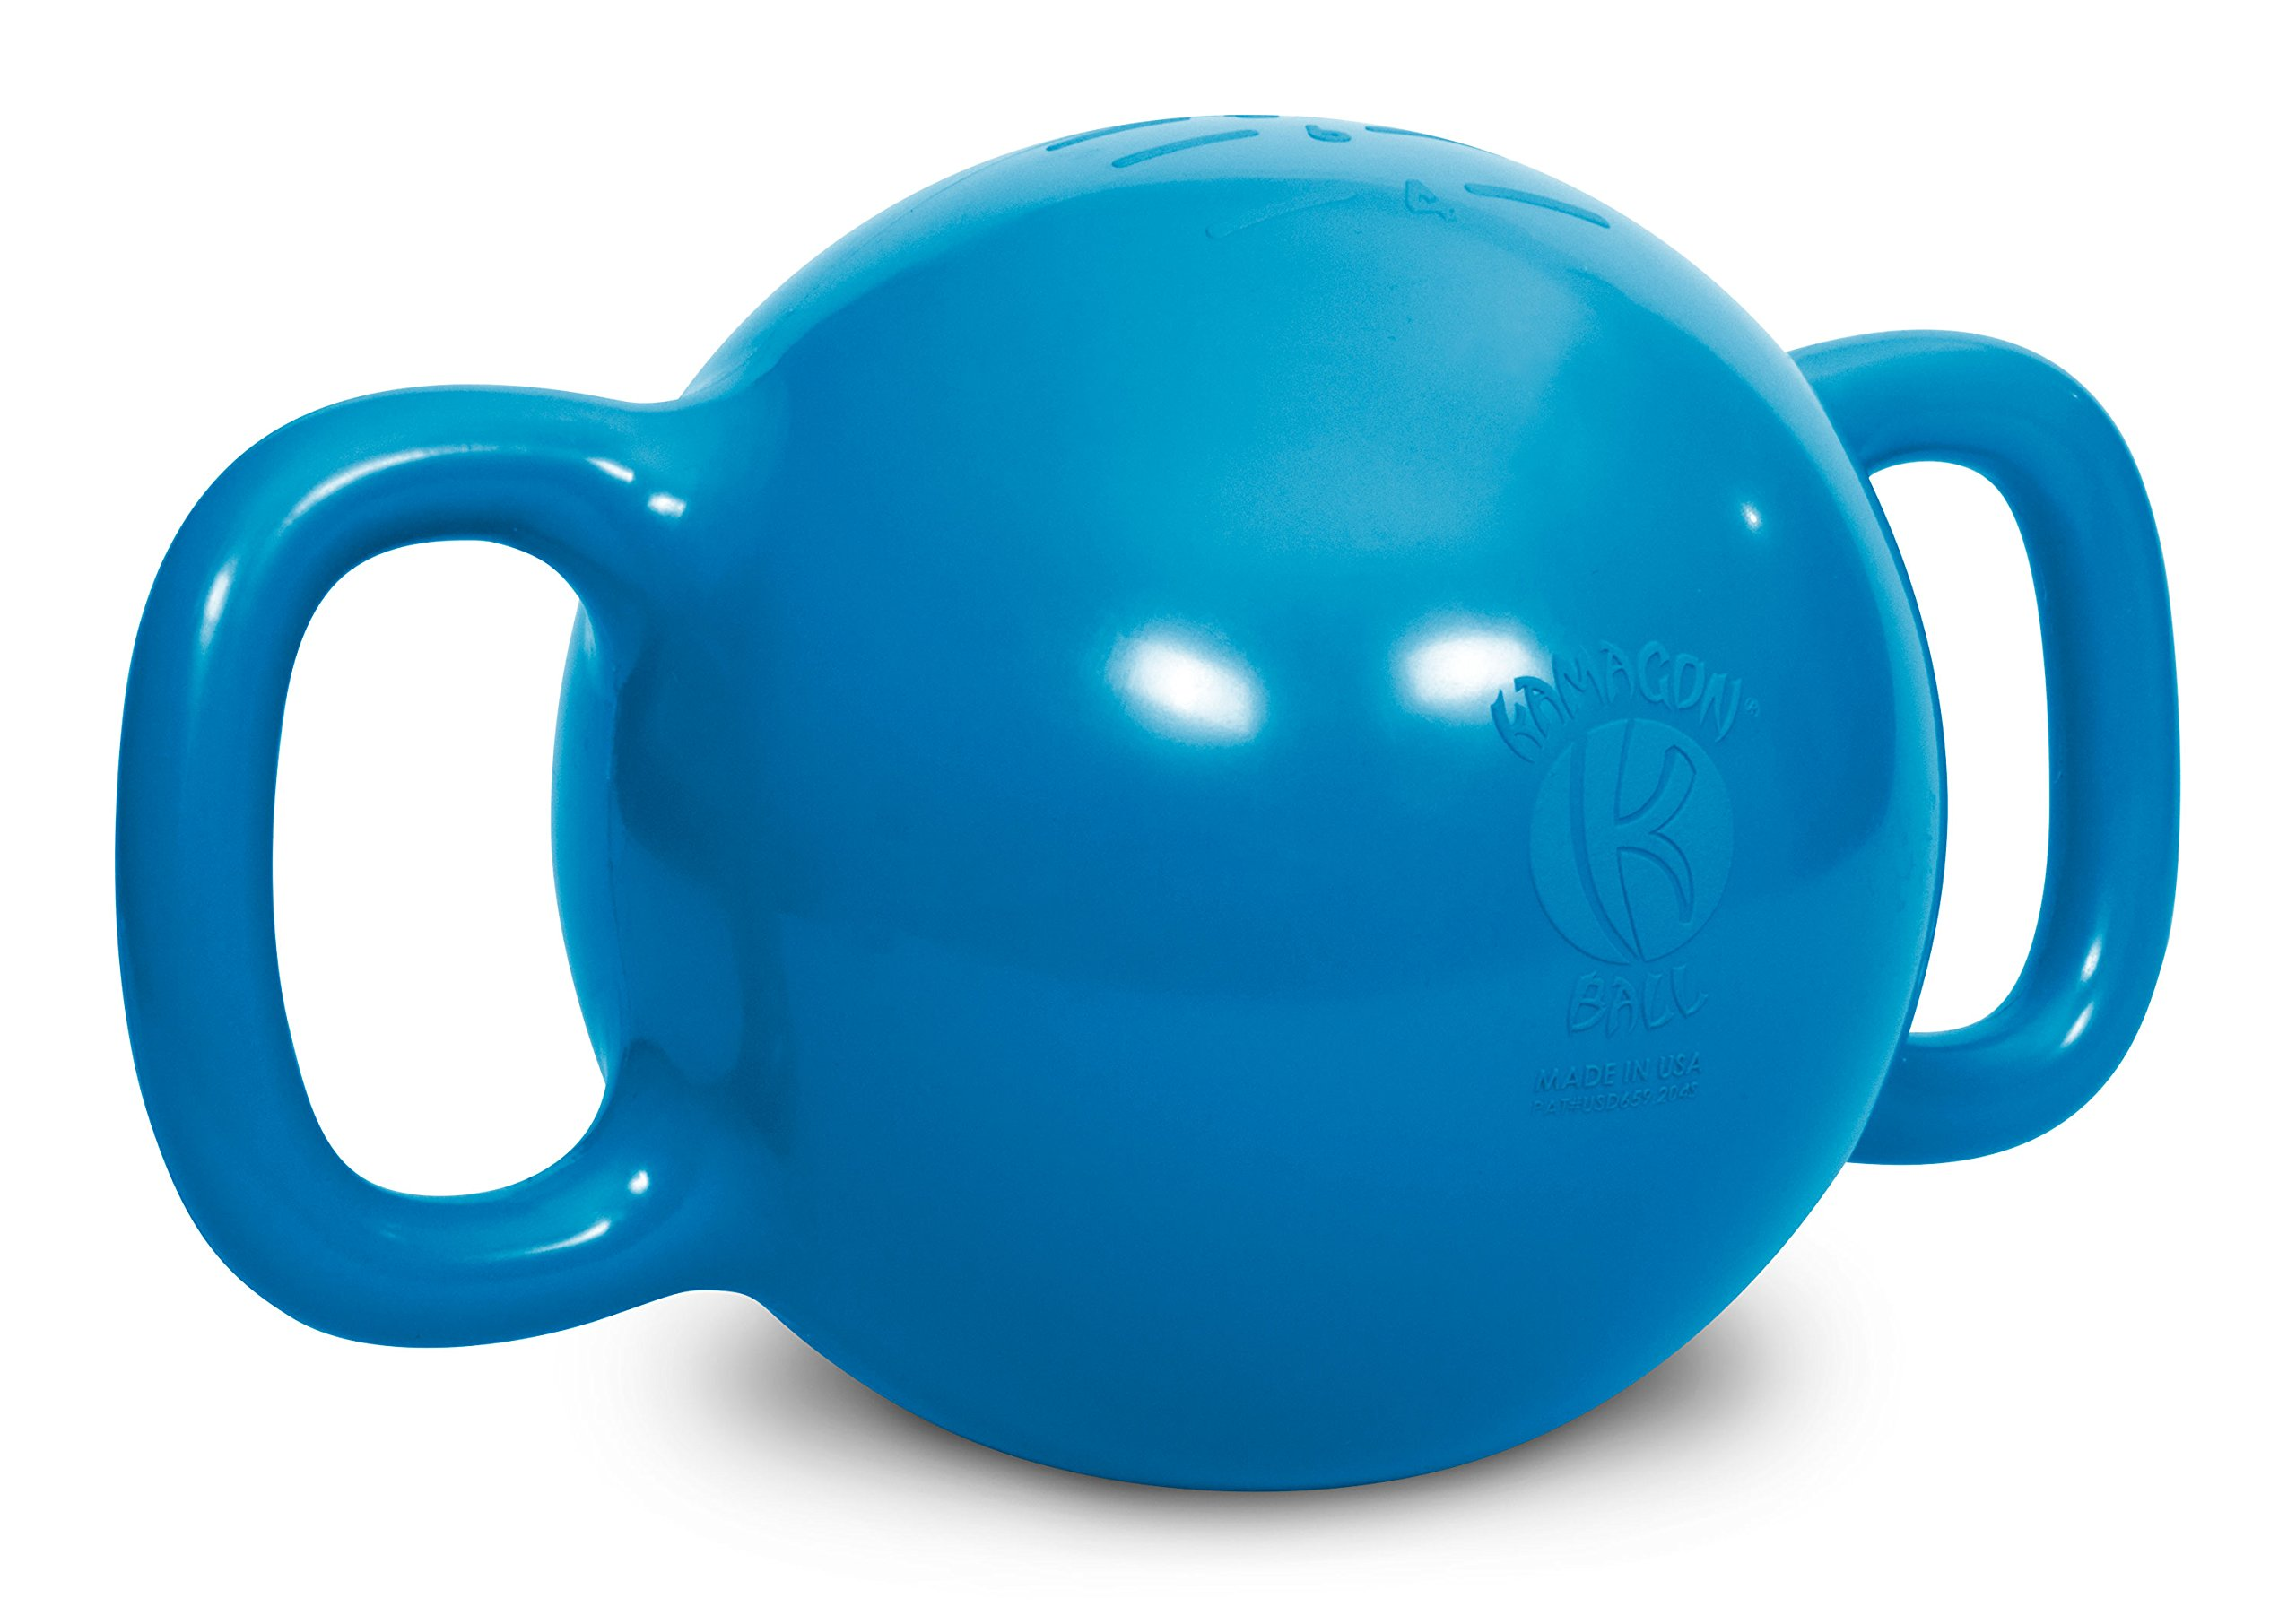 Kamagon Exercise Ball, Blue, 9-Inch with workout DVD by Kamagon